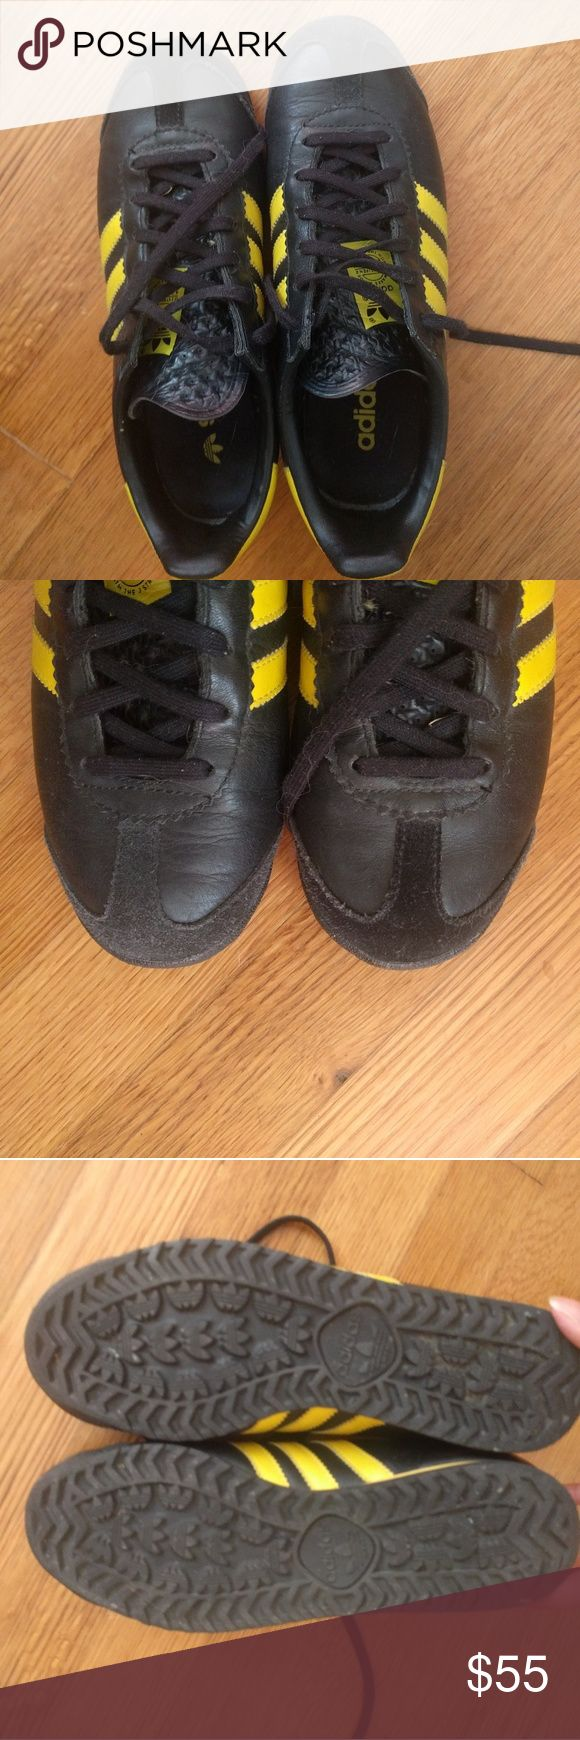 Adidas leather black yellow soccer shoes sz 5.5 /7 Rare leather Adidas soccer shoes, black with yellow stripes. Men's size 5.5, Women's Sz 6.5/7. I'm a 7 and these ran just a little small for me, which breaks my heart because I had been searching for this style forever. Great used condition. adidas Shoes Athletic Shoes